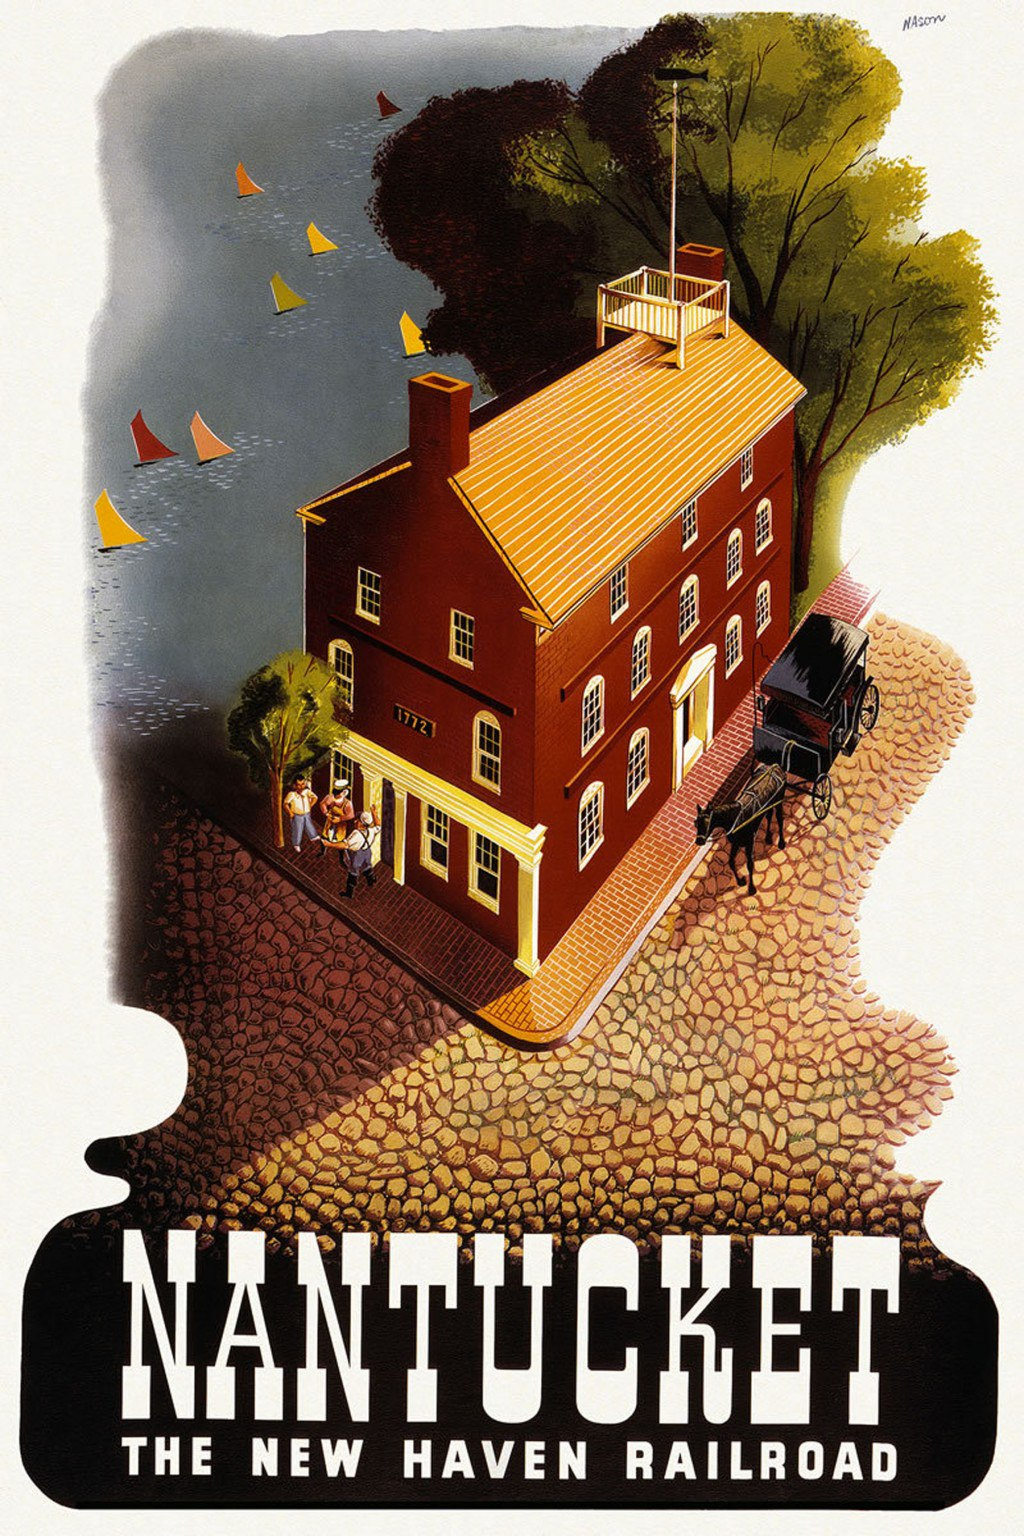 US, American travel poster